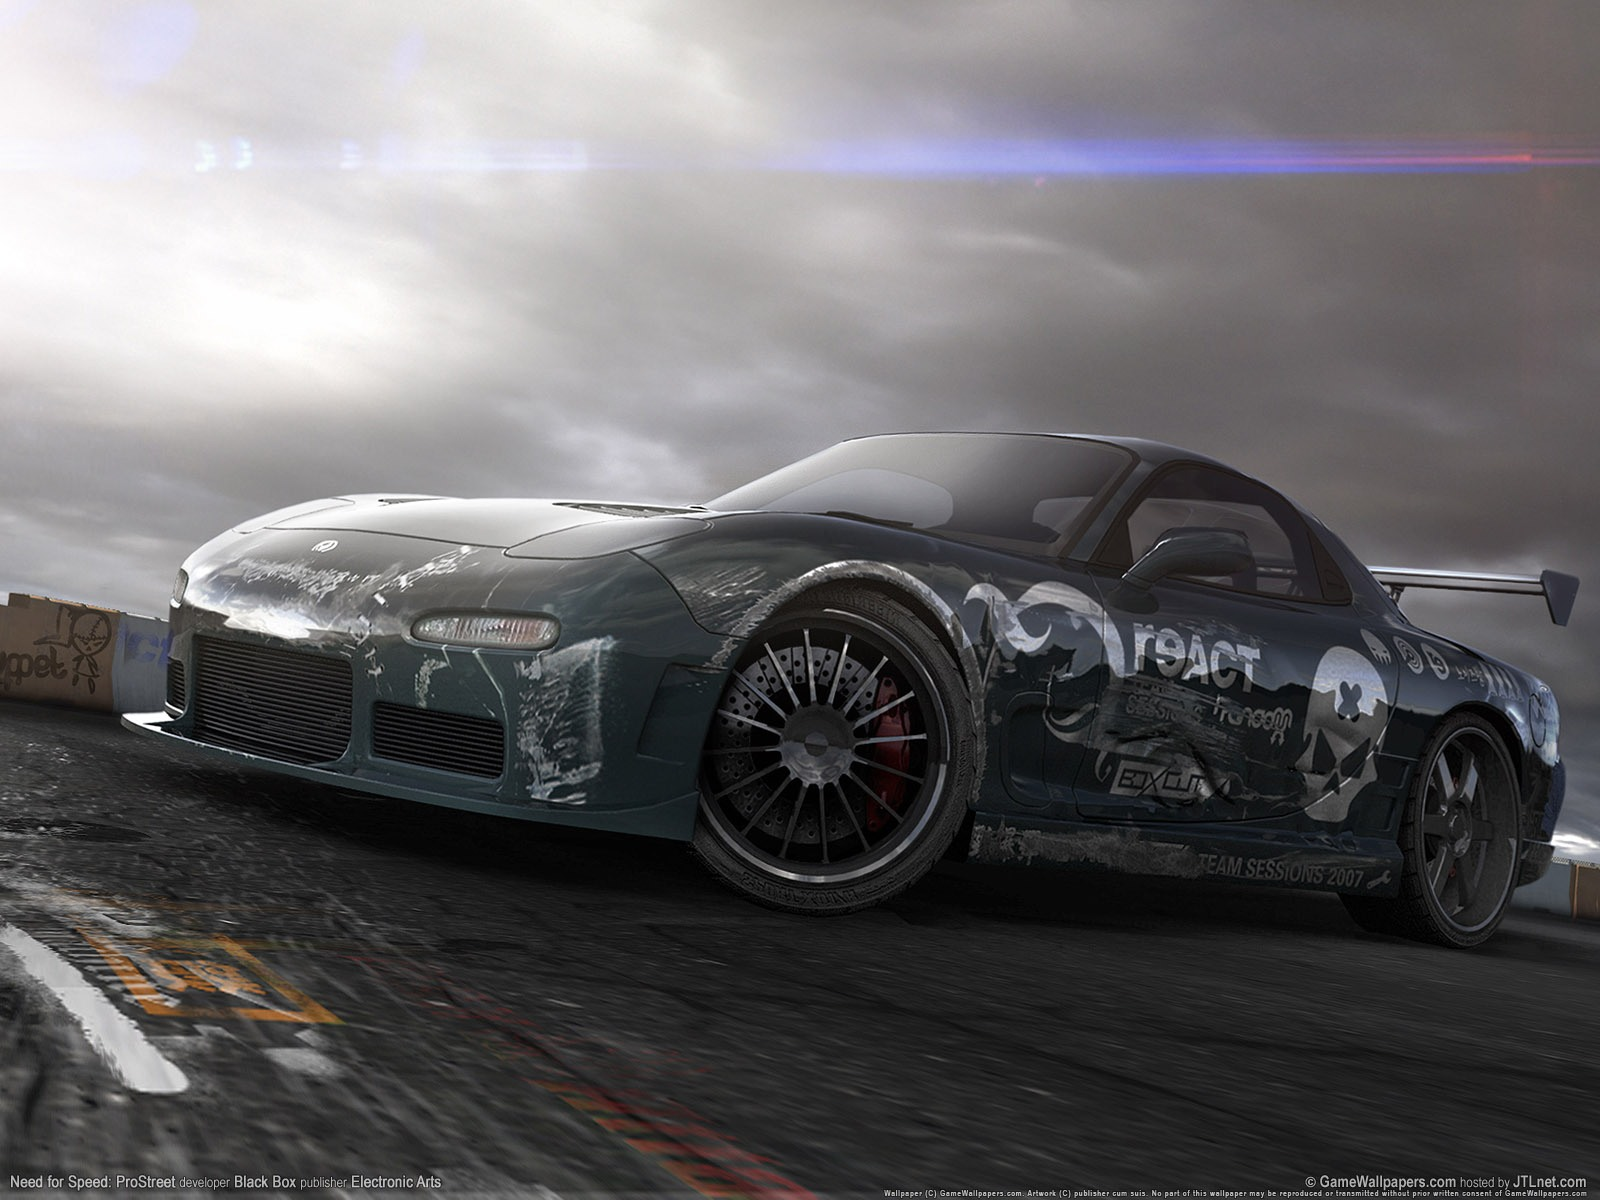 Beautiful Cars wallpapers: need for speed cars wallpapers hd